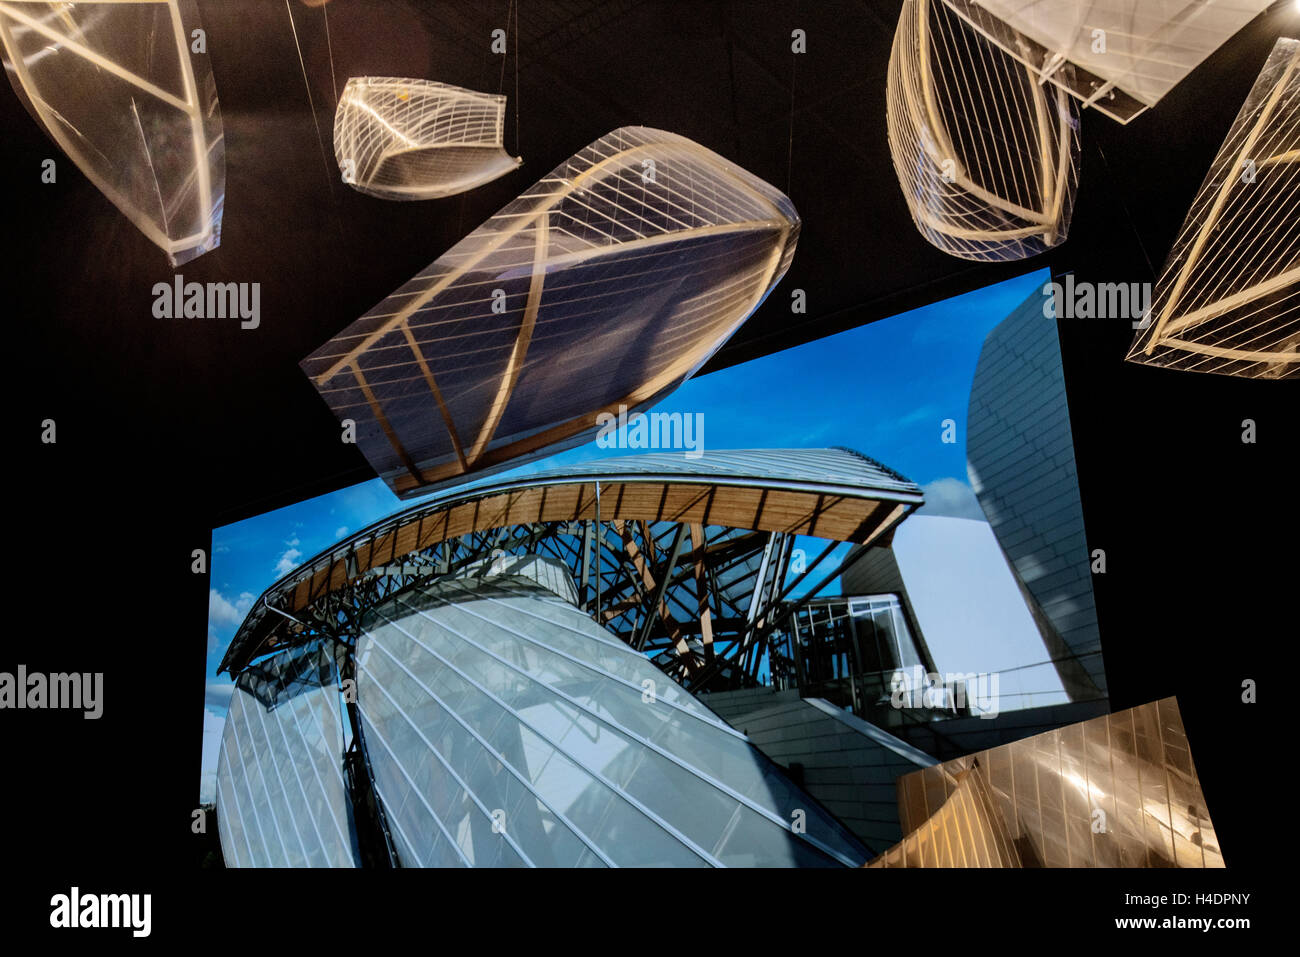 Intérieur du Musée d'Art de la fondation Louis Vuitton Paris France Photo Stock